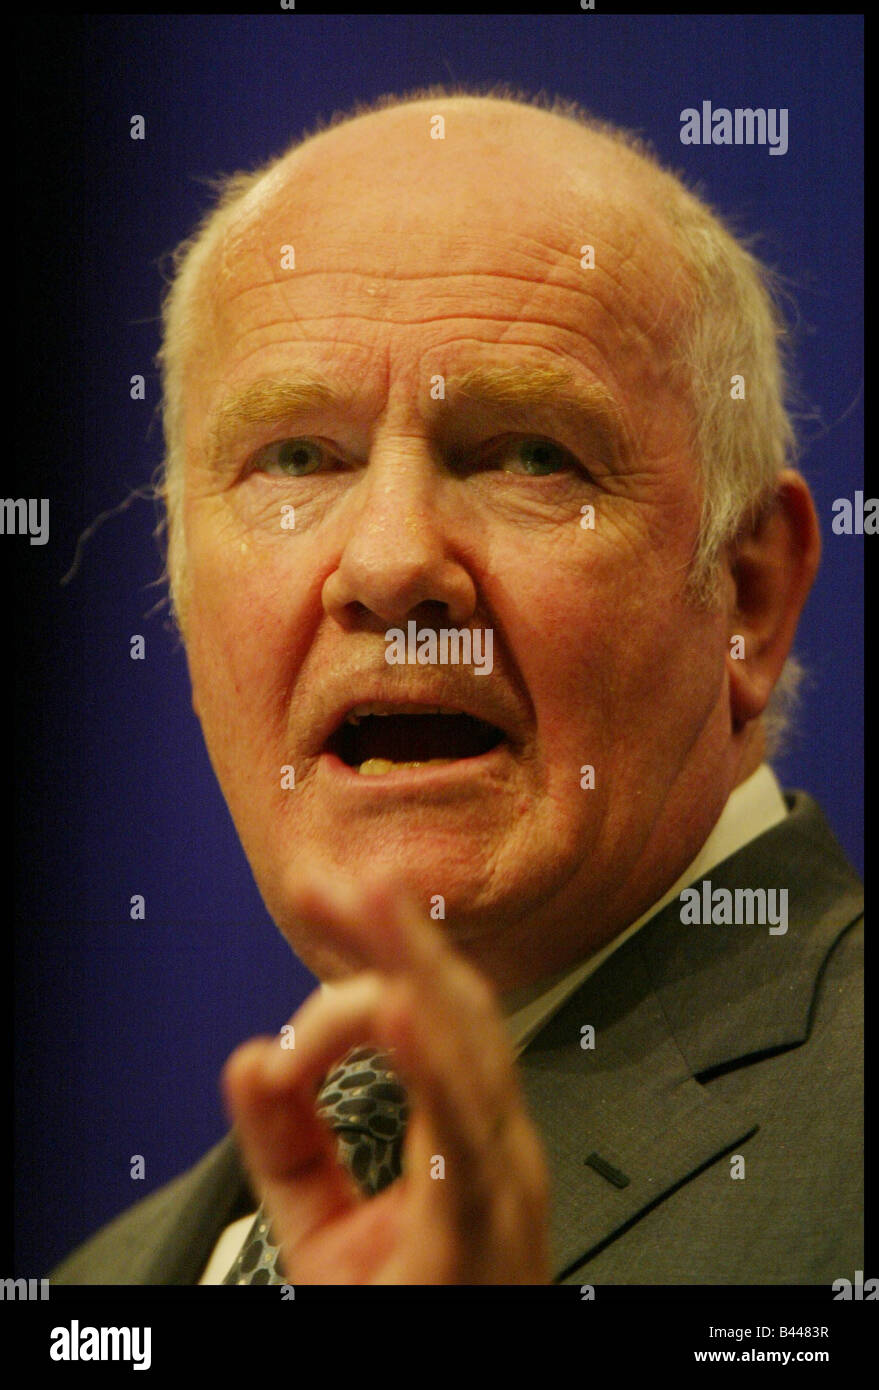 Labour s Health Secretary John Reid at the Labour Party Conference in Bournemouth October 2003 - Stock Image